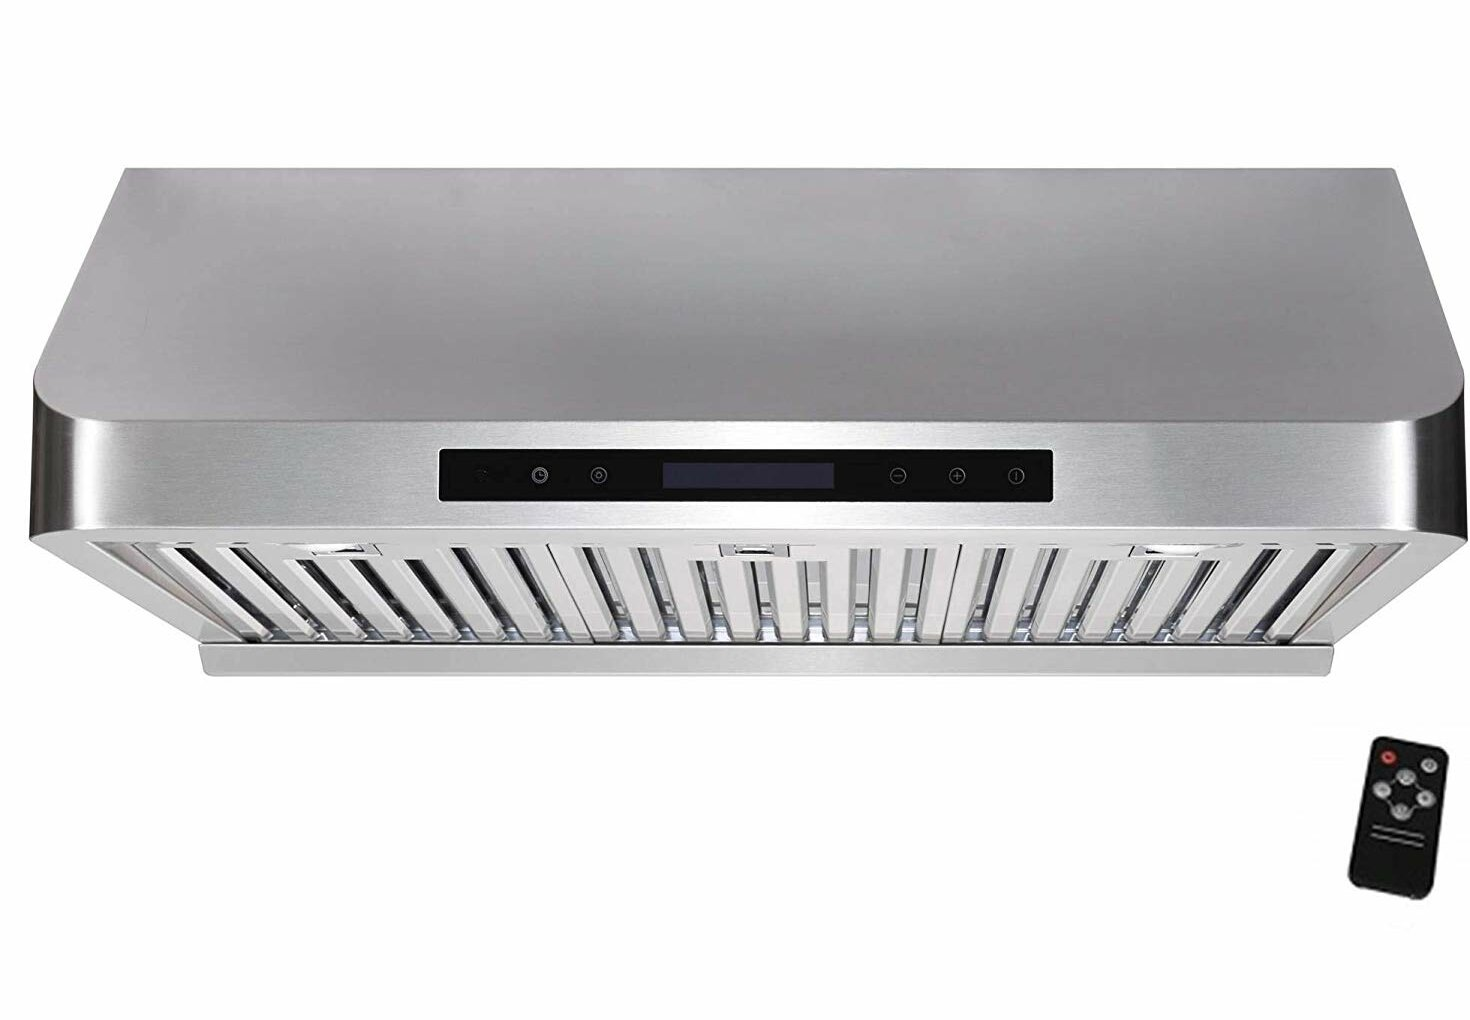 Awoco 30 Supreme 1000 Cfm Ducted Under Cabinet Range Hood In Stainless Steel With Remote Control Included Reviews Wayfair